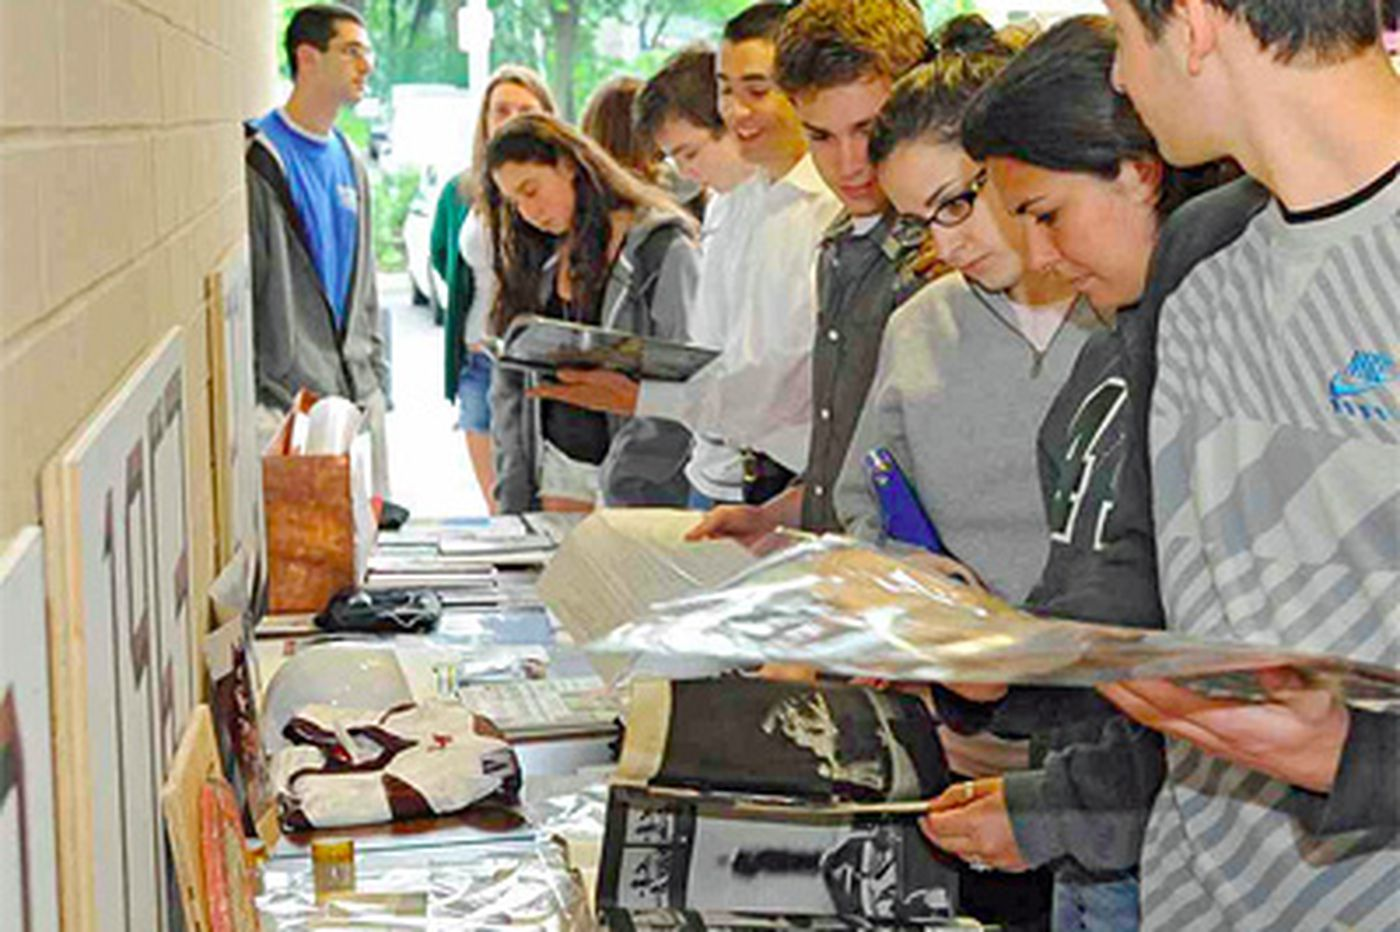 Lower Merion students get missive from distant past